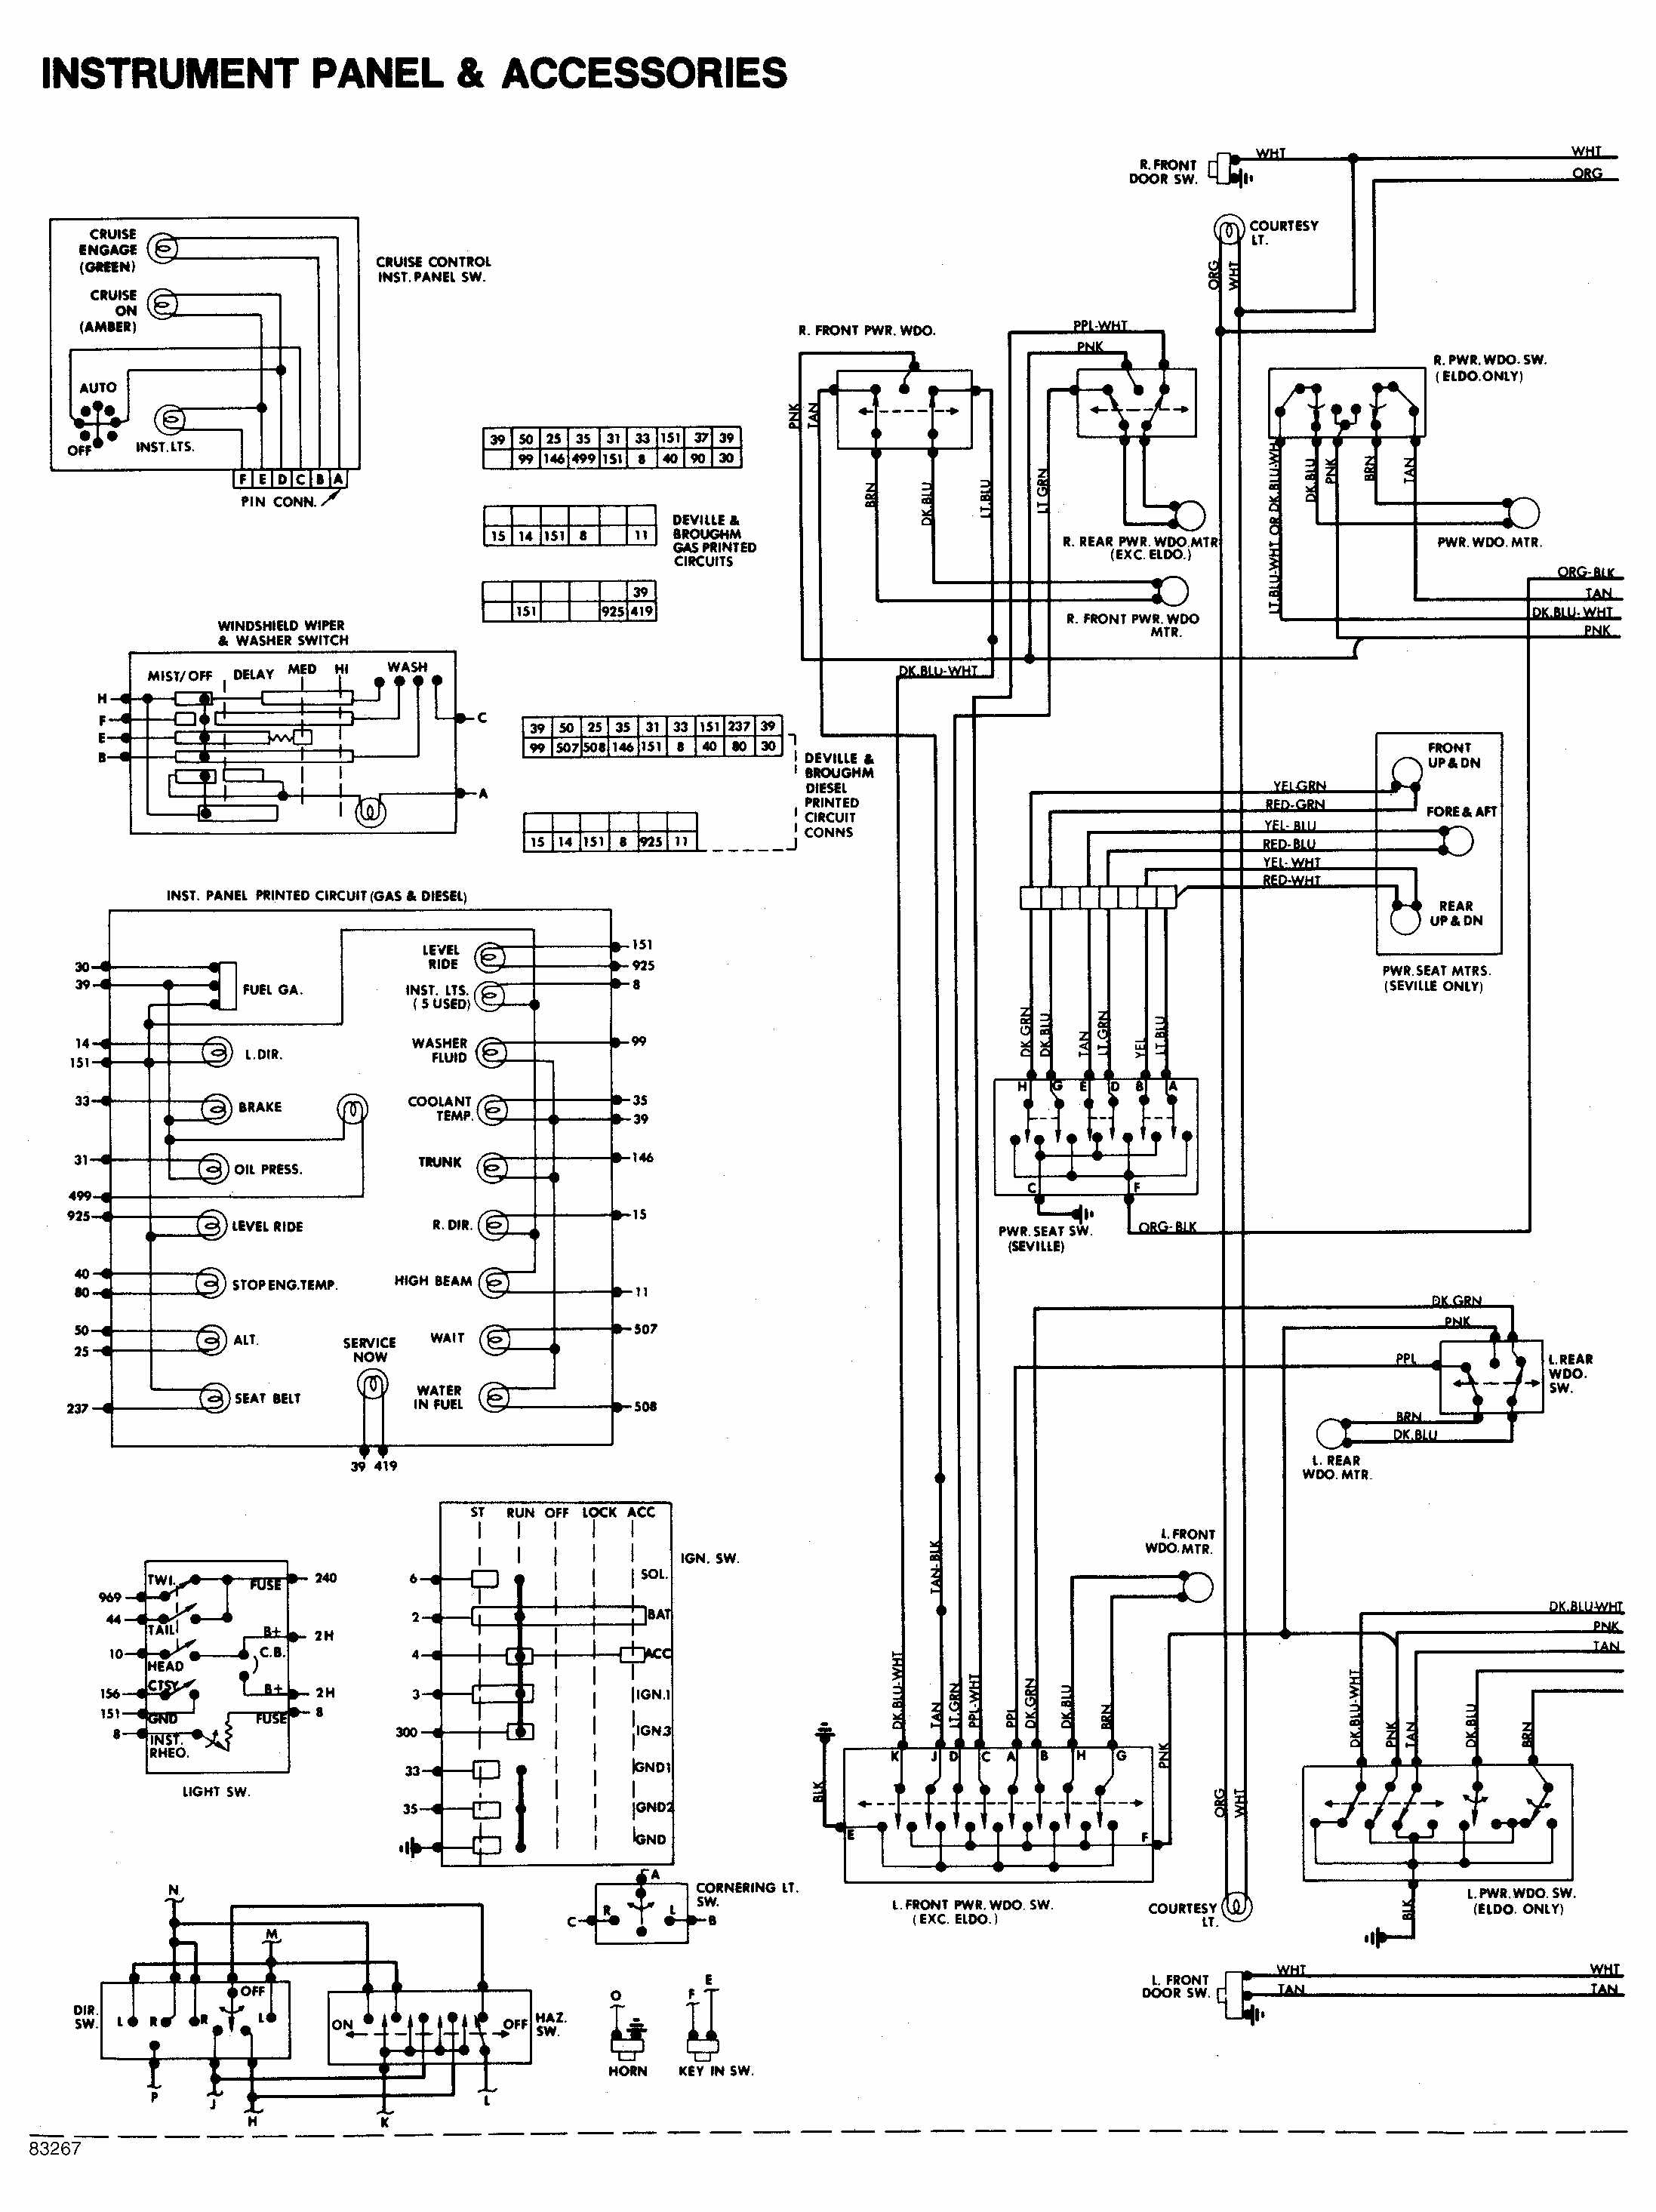 1964 Gm Fuse Box Wiring Library Vw Diagram Ignition Here We Have Chevrolet Diagrams And Related Pages